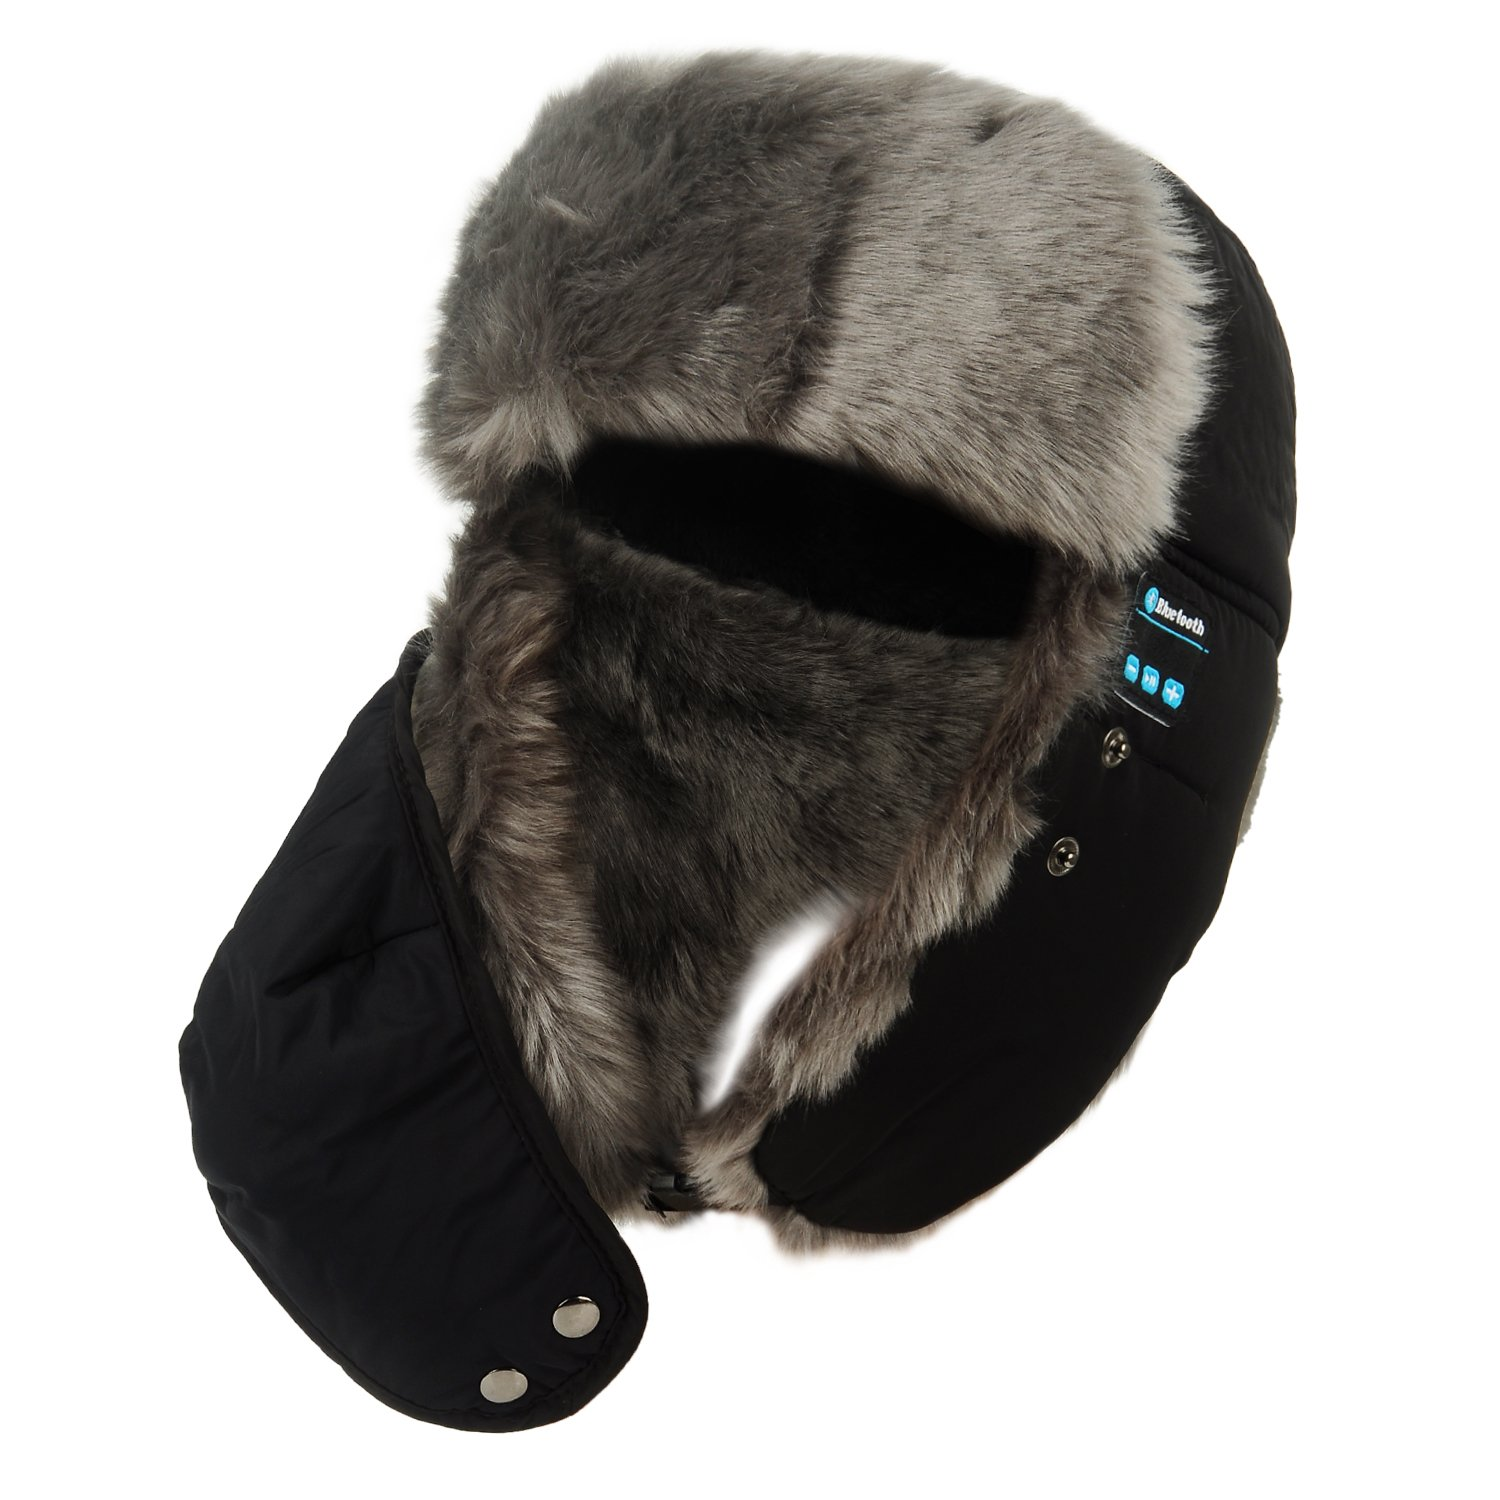 Supershop Winter Weatherproof Wireless Bluetooth Hat Music Hands-free Headset With Soft Faux Fur,Windproof Protective Mask,Suit For Snowboarding, Skiing, Skating And Other Activities